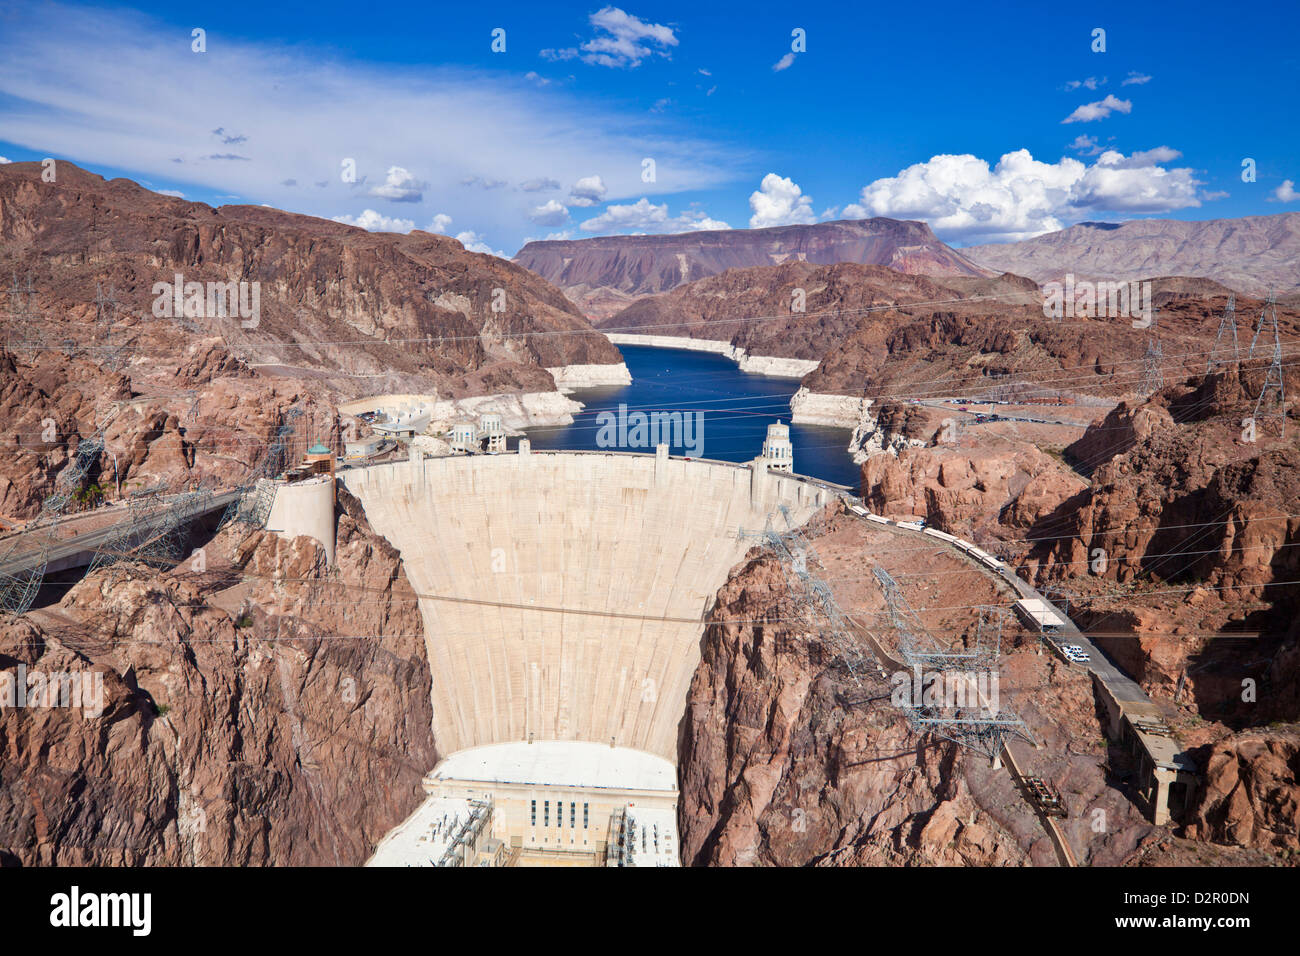 Hoover Dam, Lake Mead Reservoir, Boulder City, Nevada, United States of America, North America - Stock Image